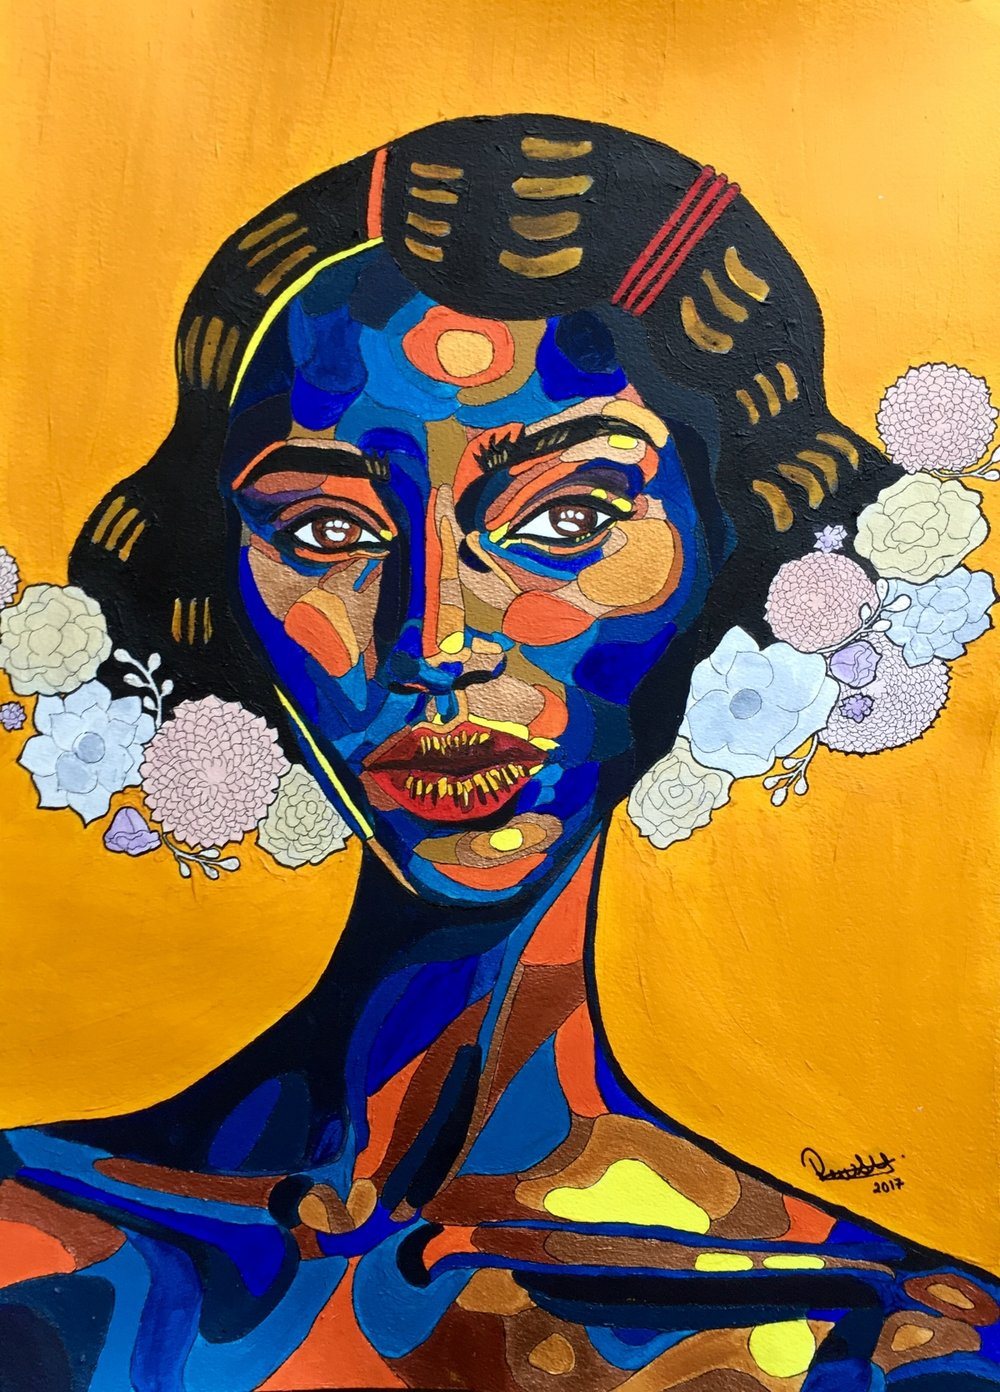 Eziamaka   THE GOOD PATH IN LIFE (THE PLACE YOU WENT TO WAS GOOD)  She embodies peace, good health and wealth